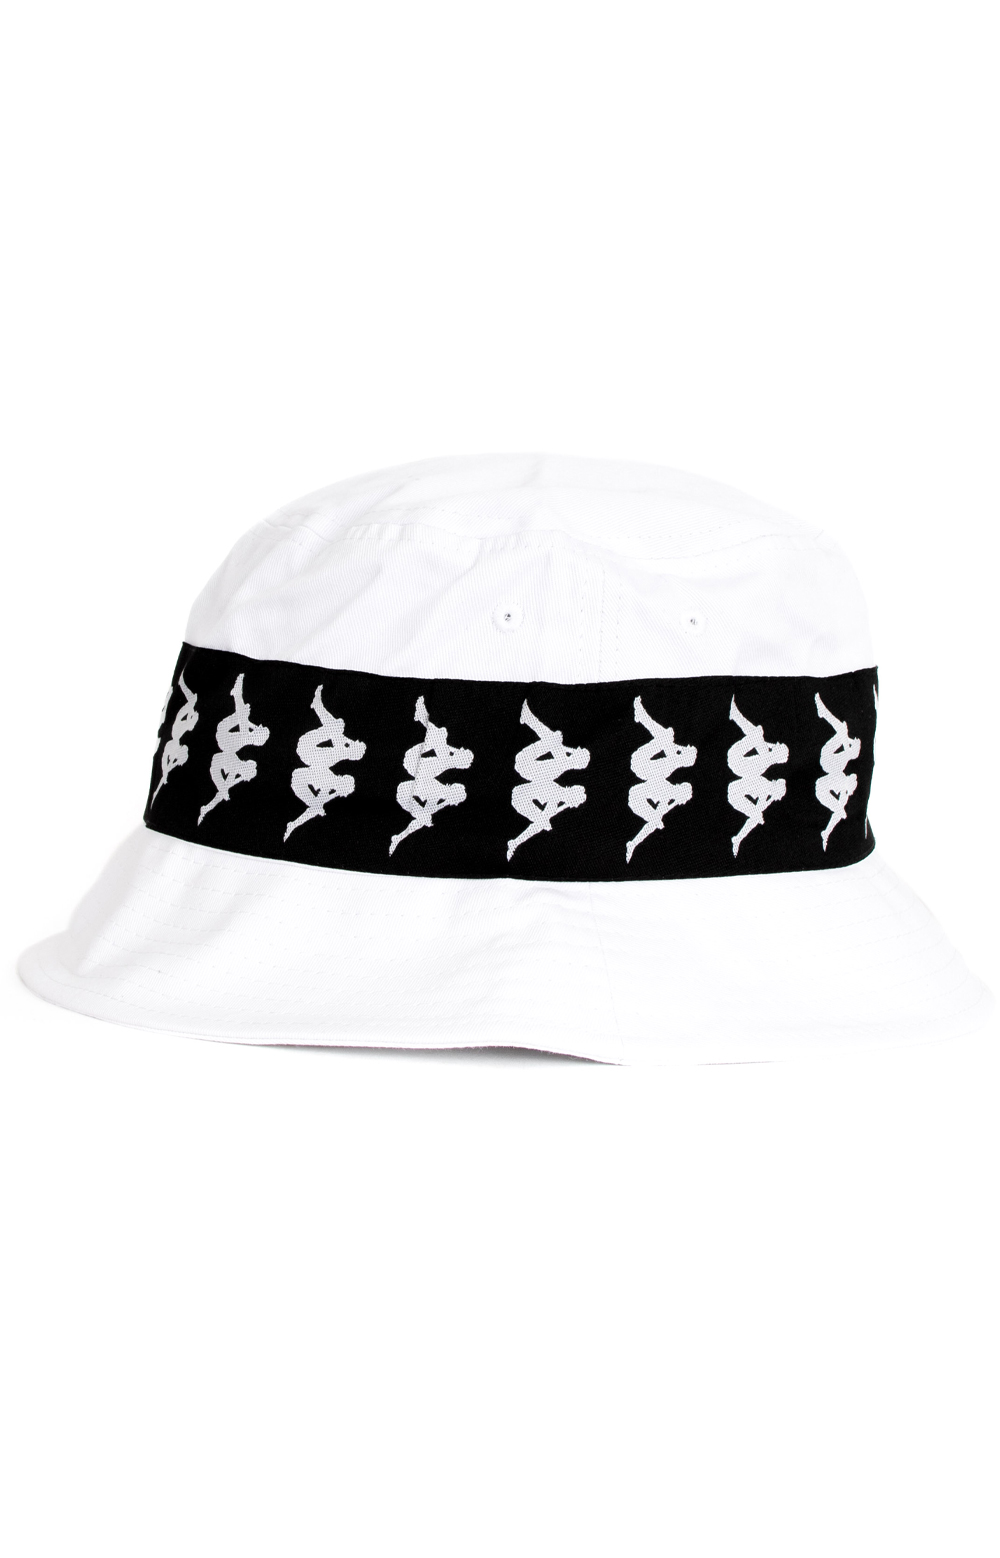 943d4b9405a Authentic Bzahlab Bucket Hat - White